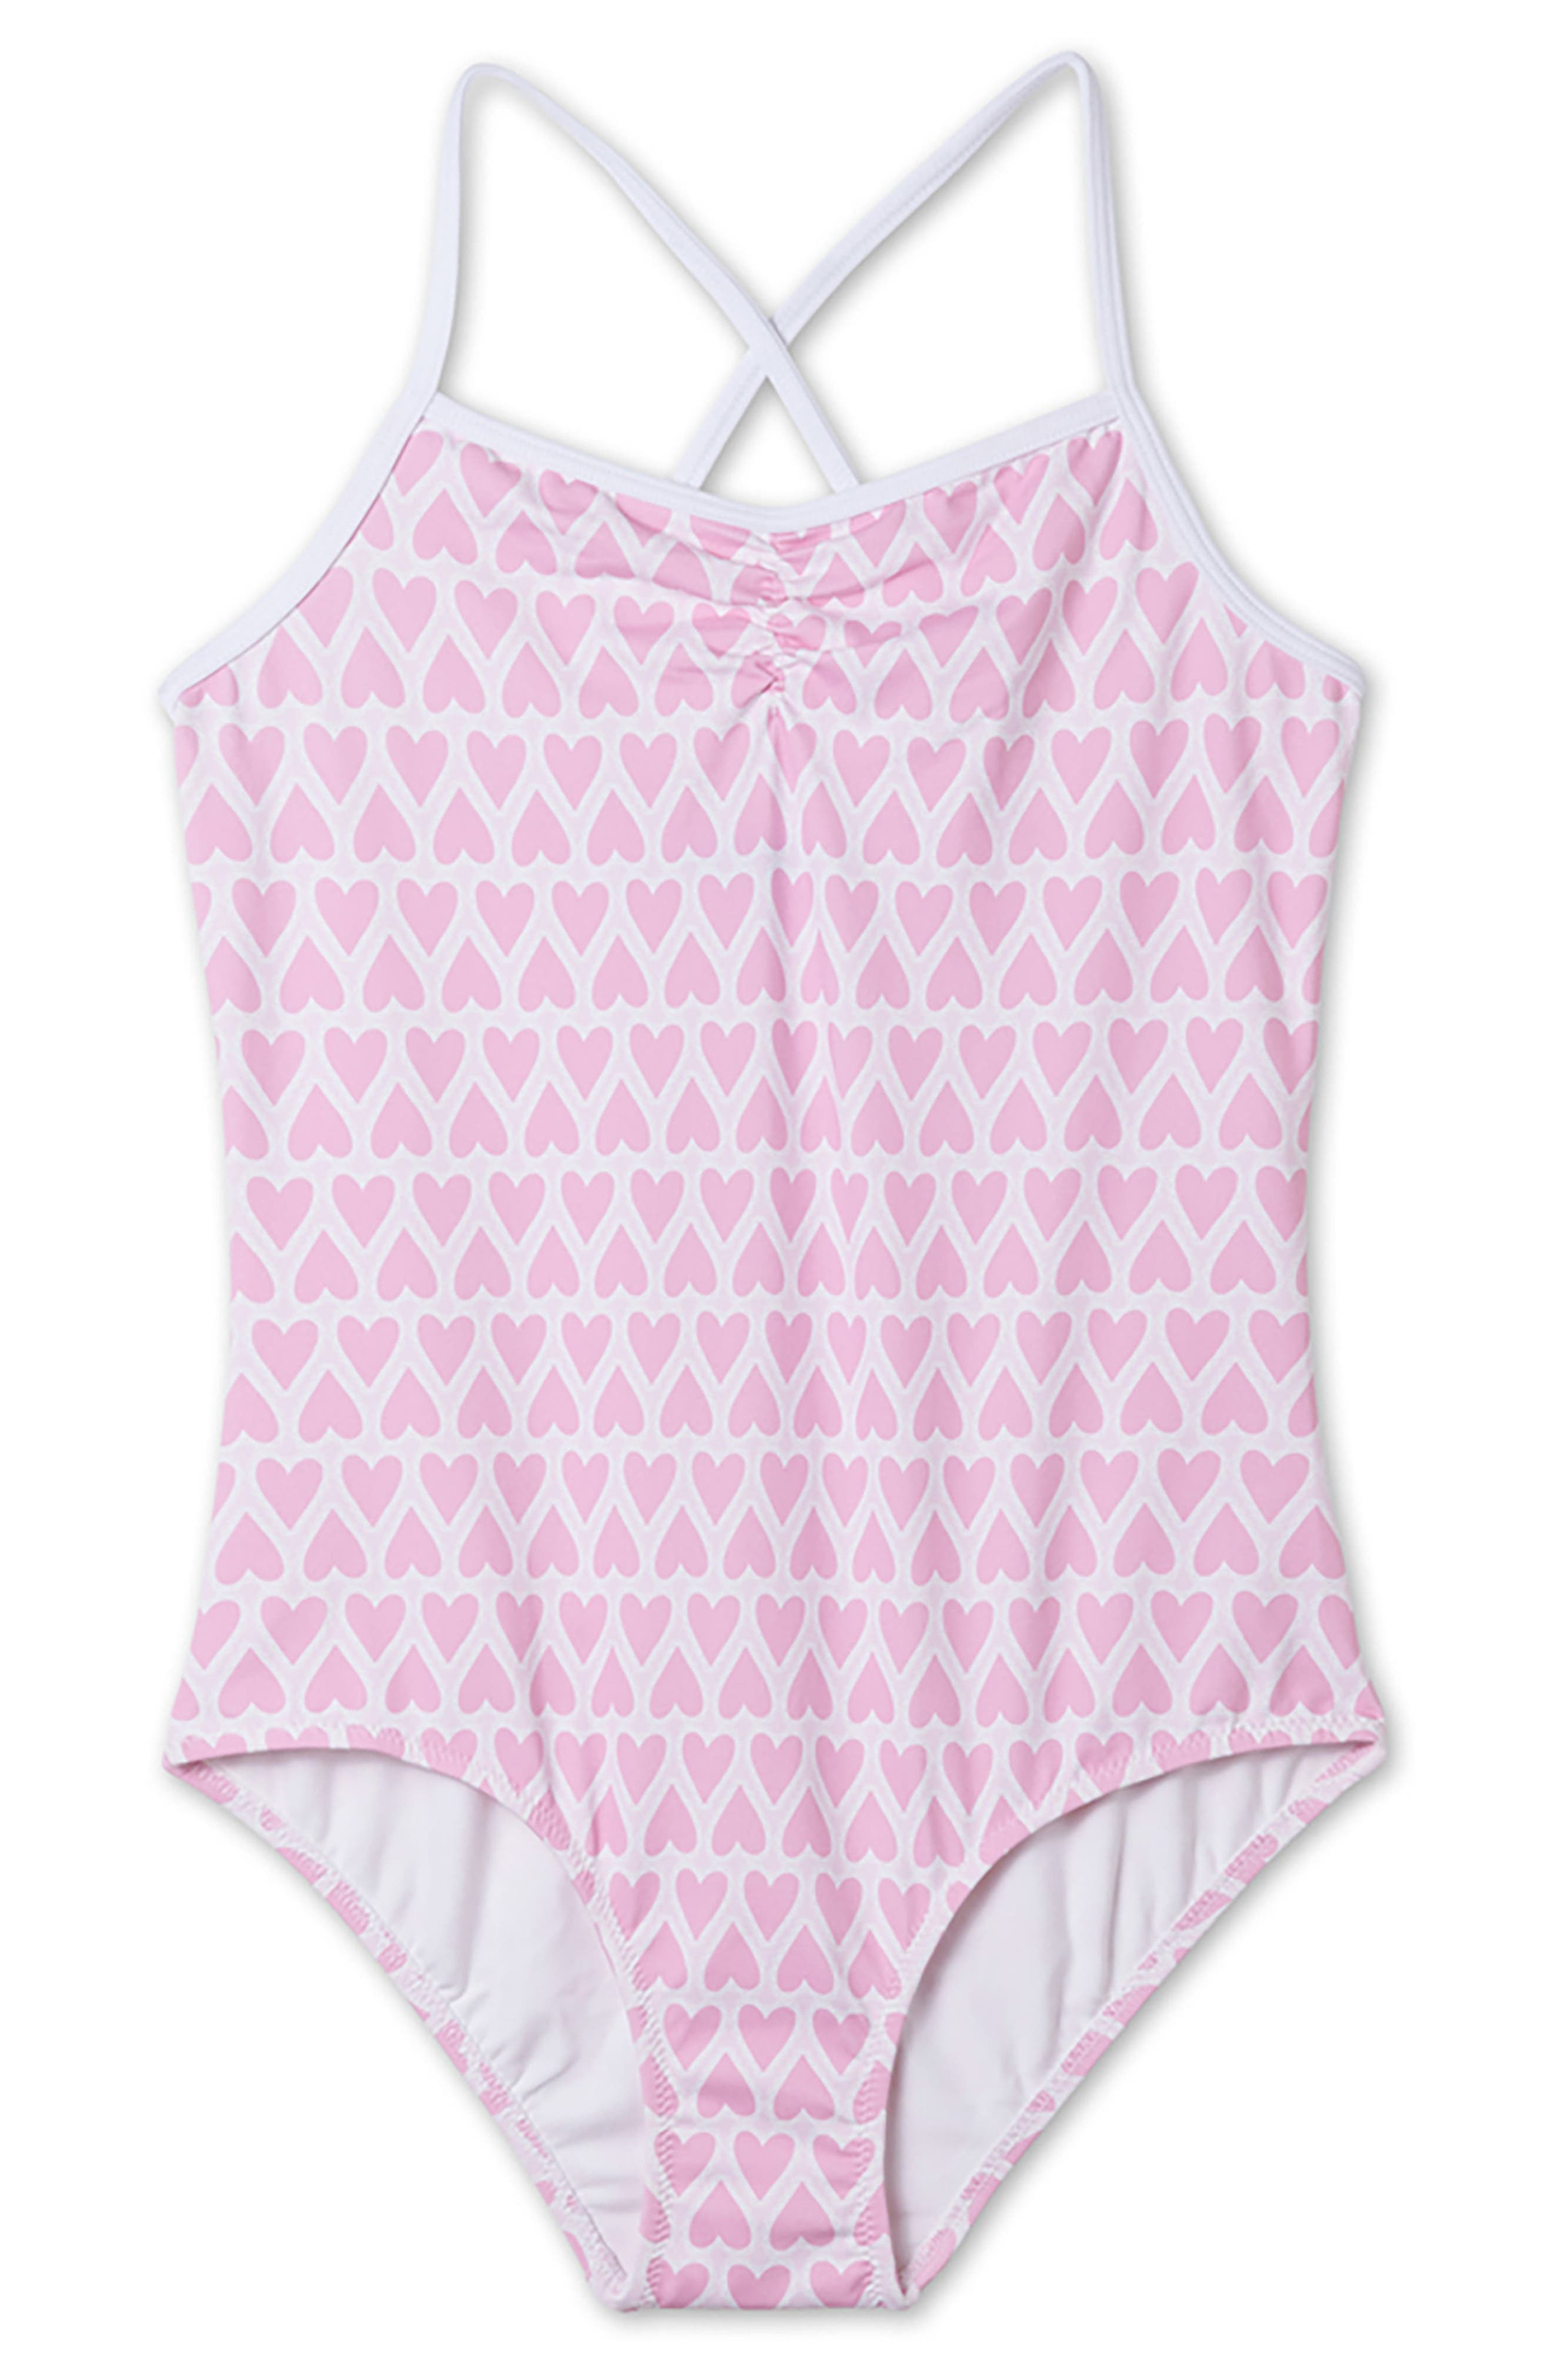 Heart Print One-Piece Swimsuit,                             Main thumbnail 1, color,                             Pink